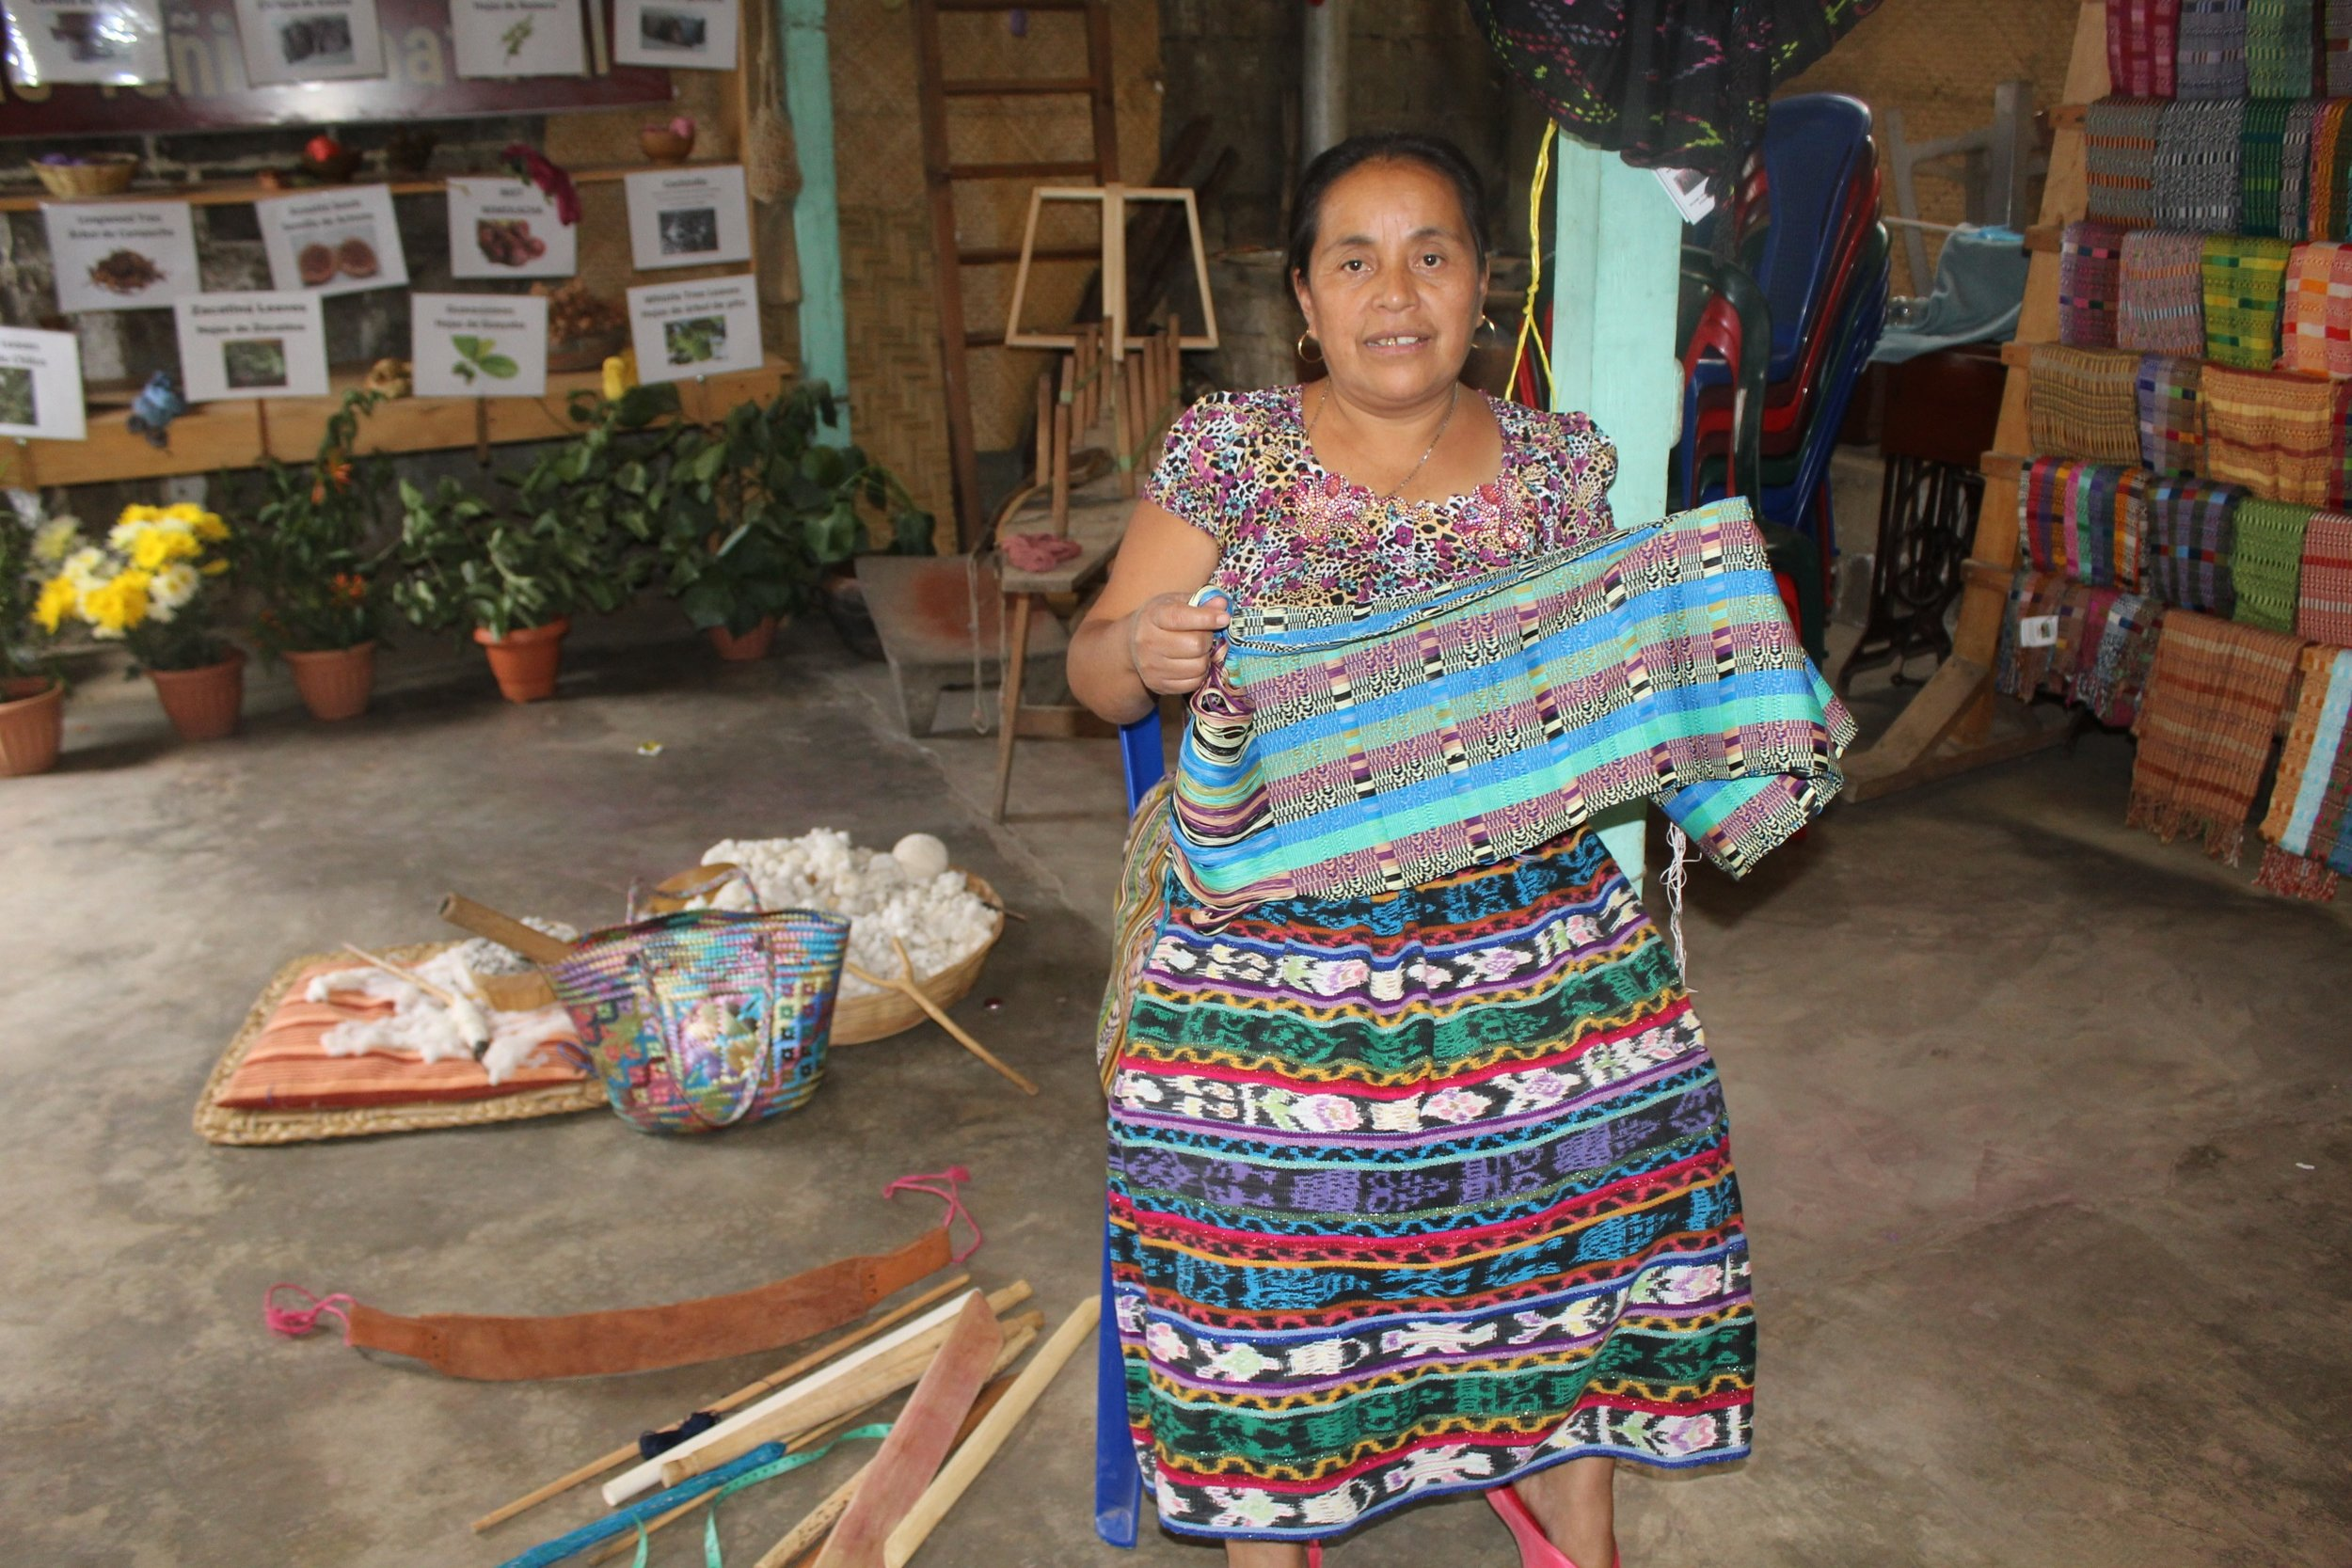 Dominga Perez - San Juan La Laguna - Friendship Bridge's client for 5 loan cycles.Dominga eagerly attends her Monthly Trust Bank meetings and has learned a great deal about business practices, health, family issues, and women's empowerment. Her dedication to develop beautiful products is evident through such creations as these Jaspe Shawls.